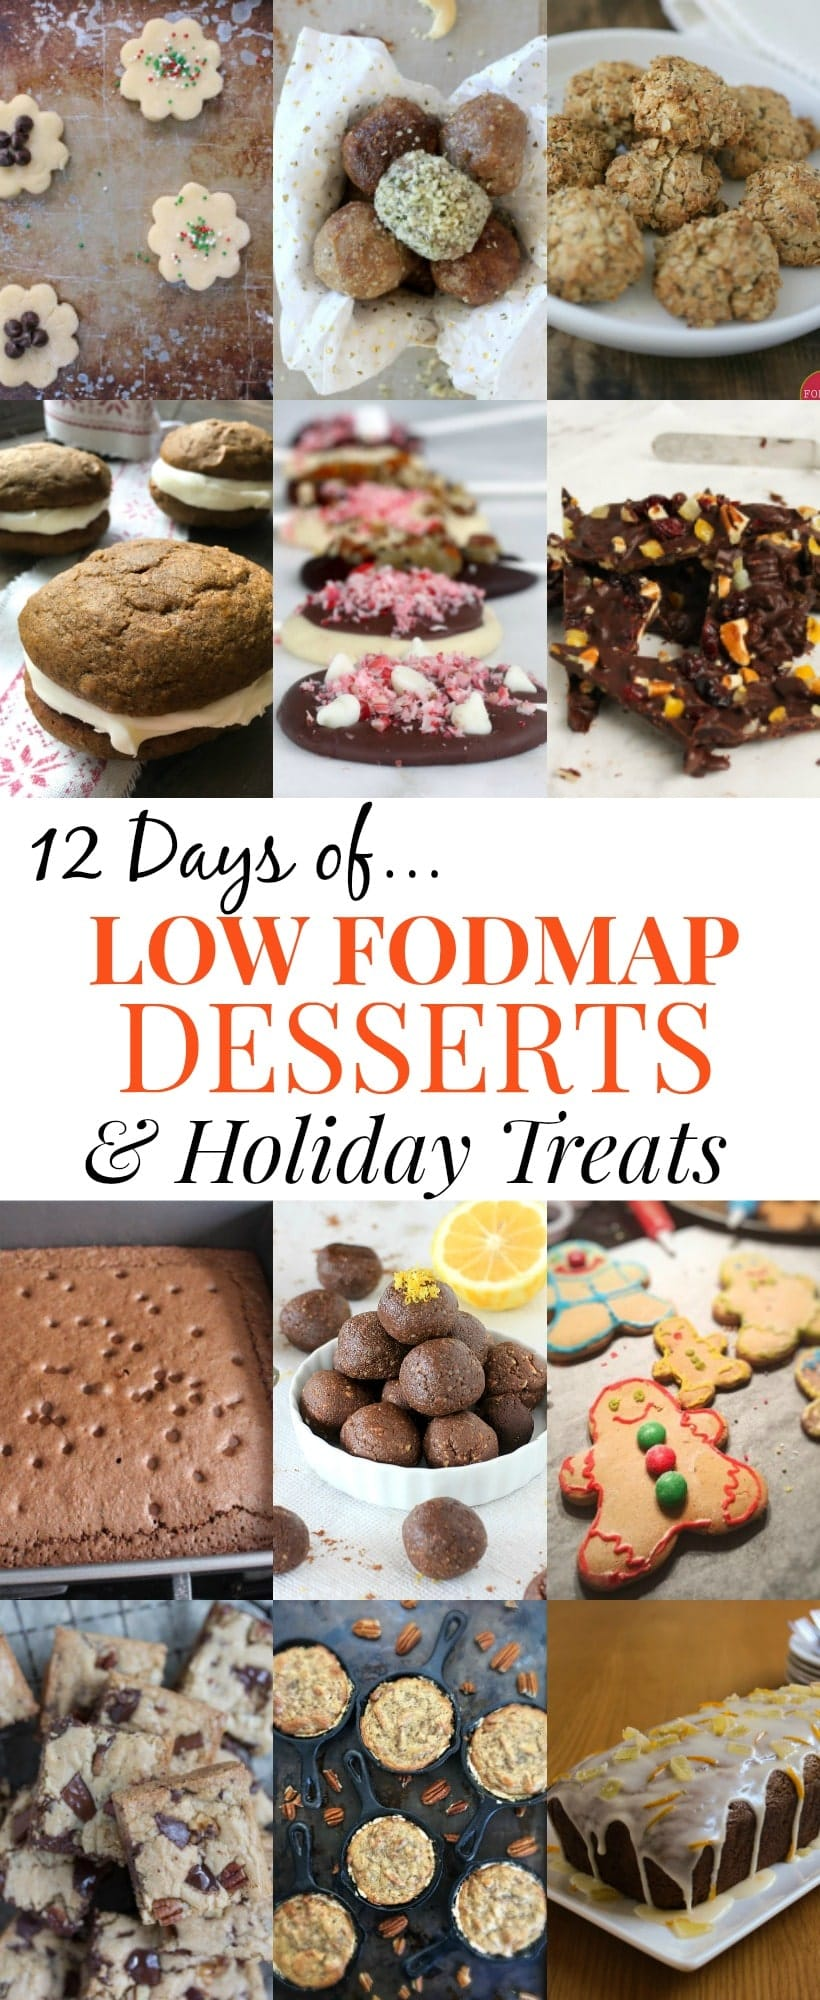 12 Days of Low FODMAP Desserts & Holiday Treats